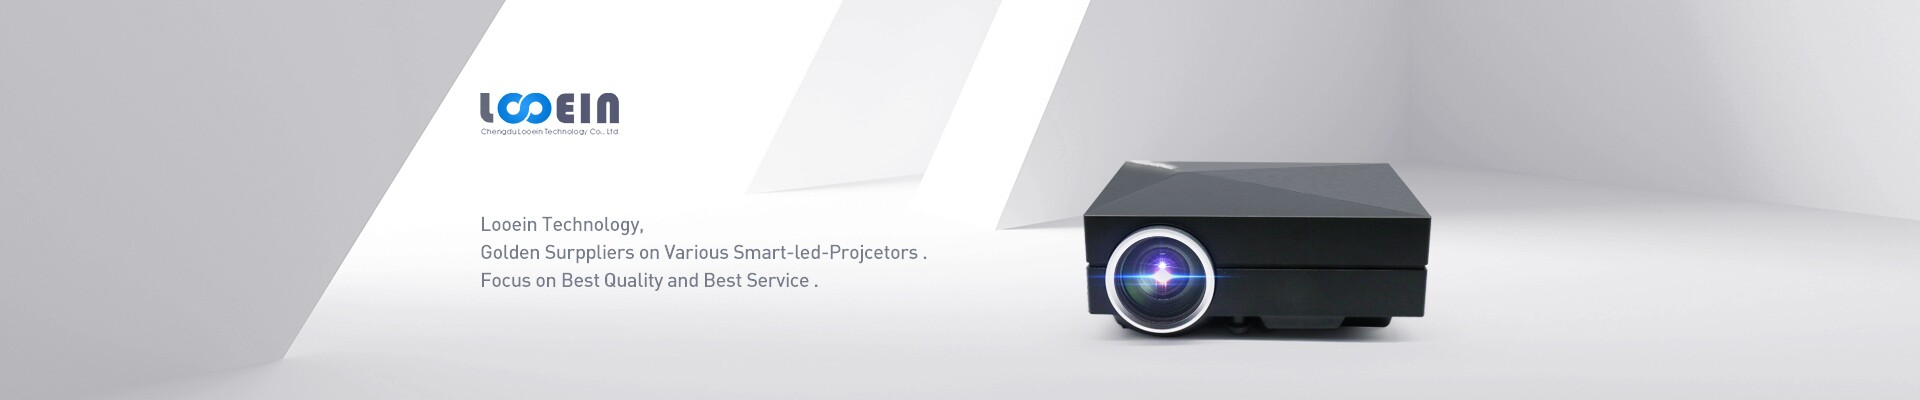 DLP Projector02